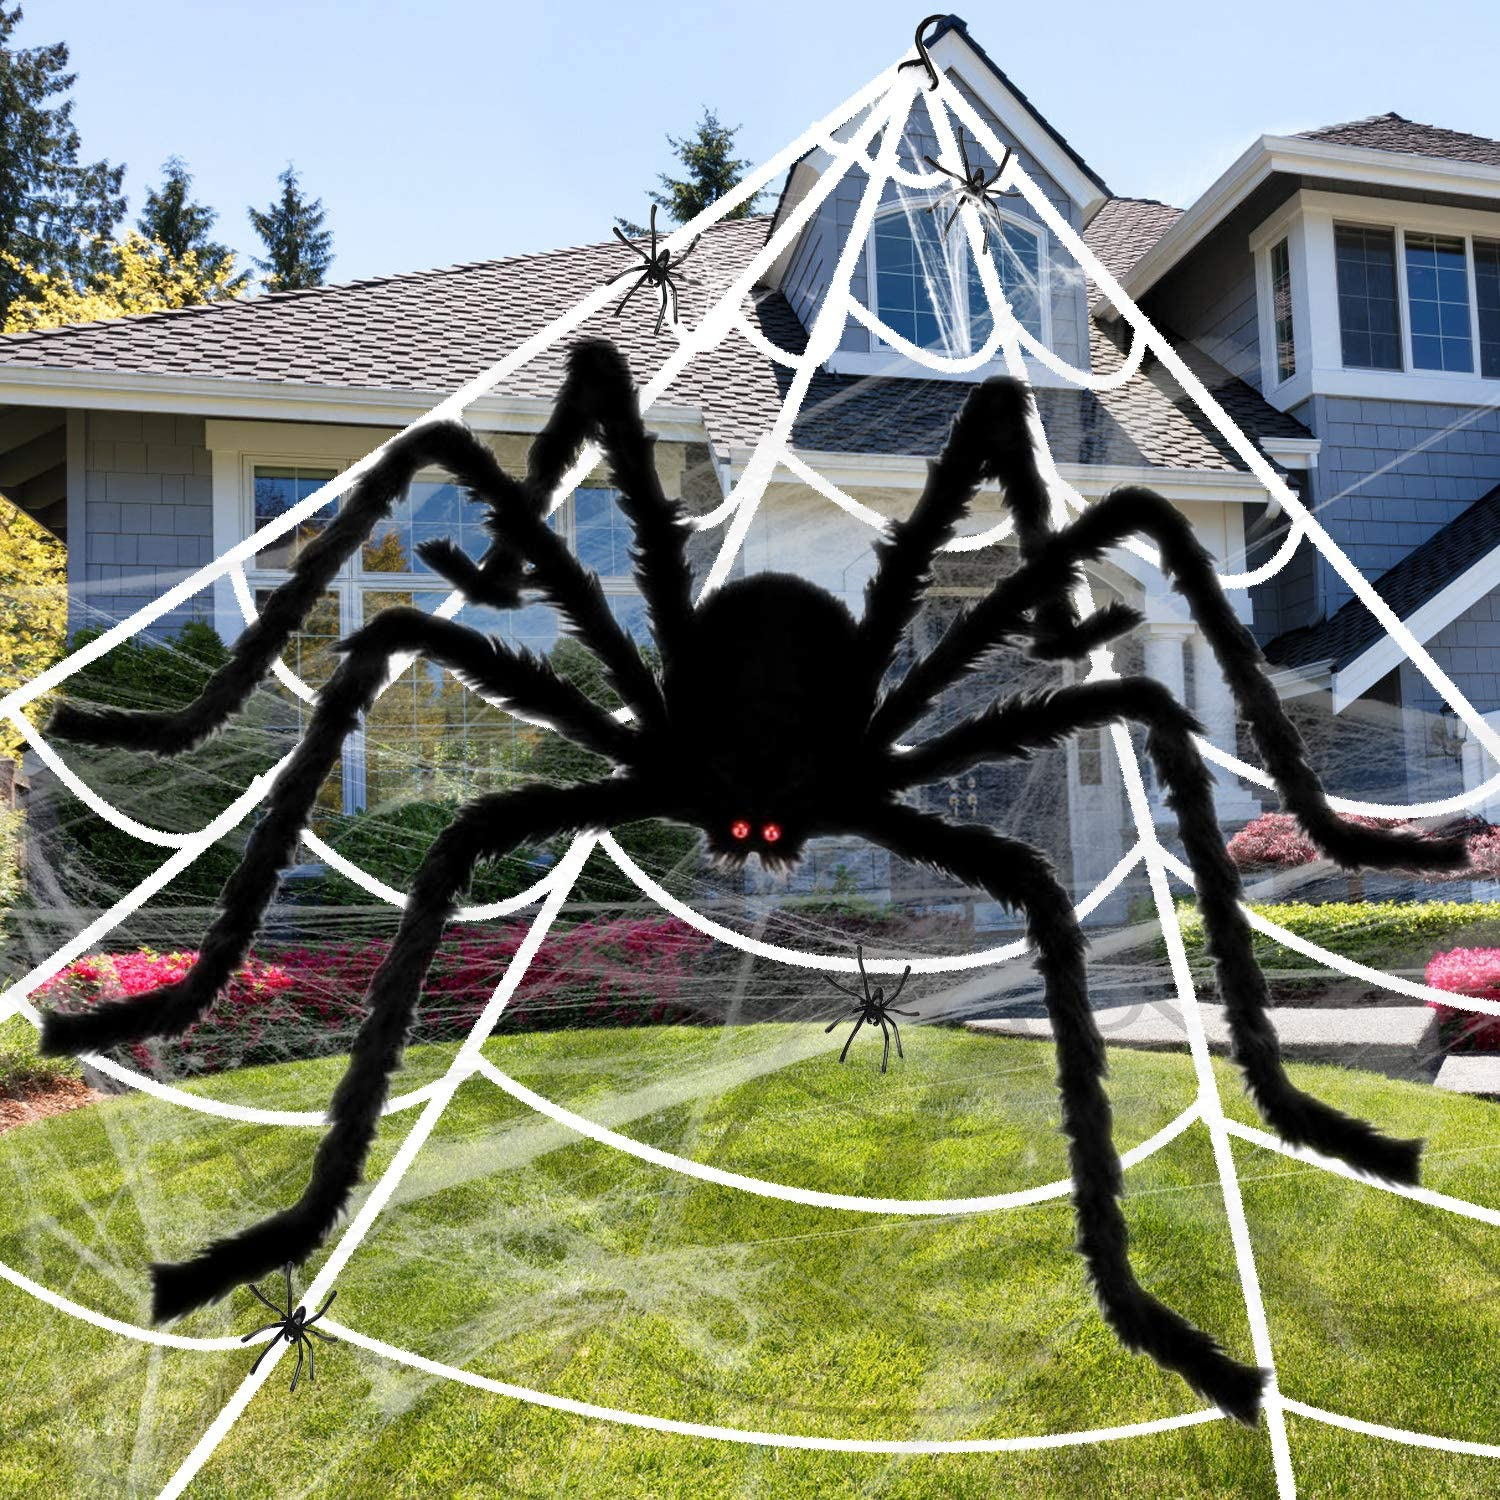 Apsung 275'' Halloween Giant Spider Web Decorations with 60'' Fake Scary Hairy Spider, 4 Small Spiders & Extra Stretch Cobweb for Indoor Outdoor Halloween Decor Yard Lawn Party Supplies